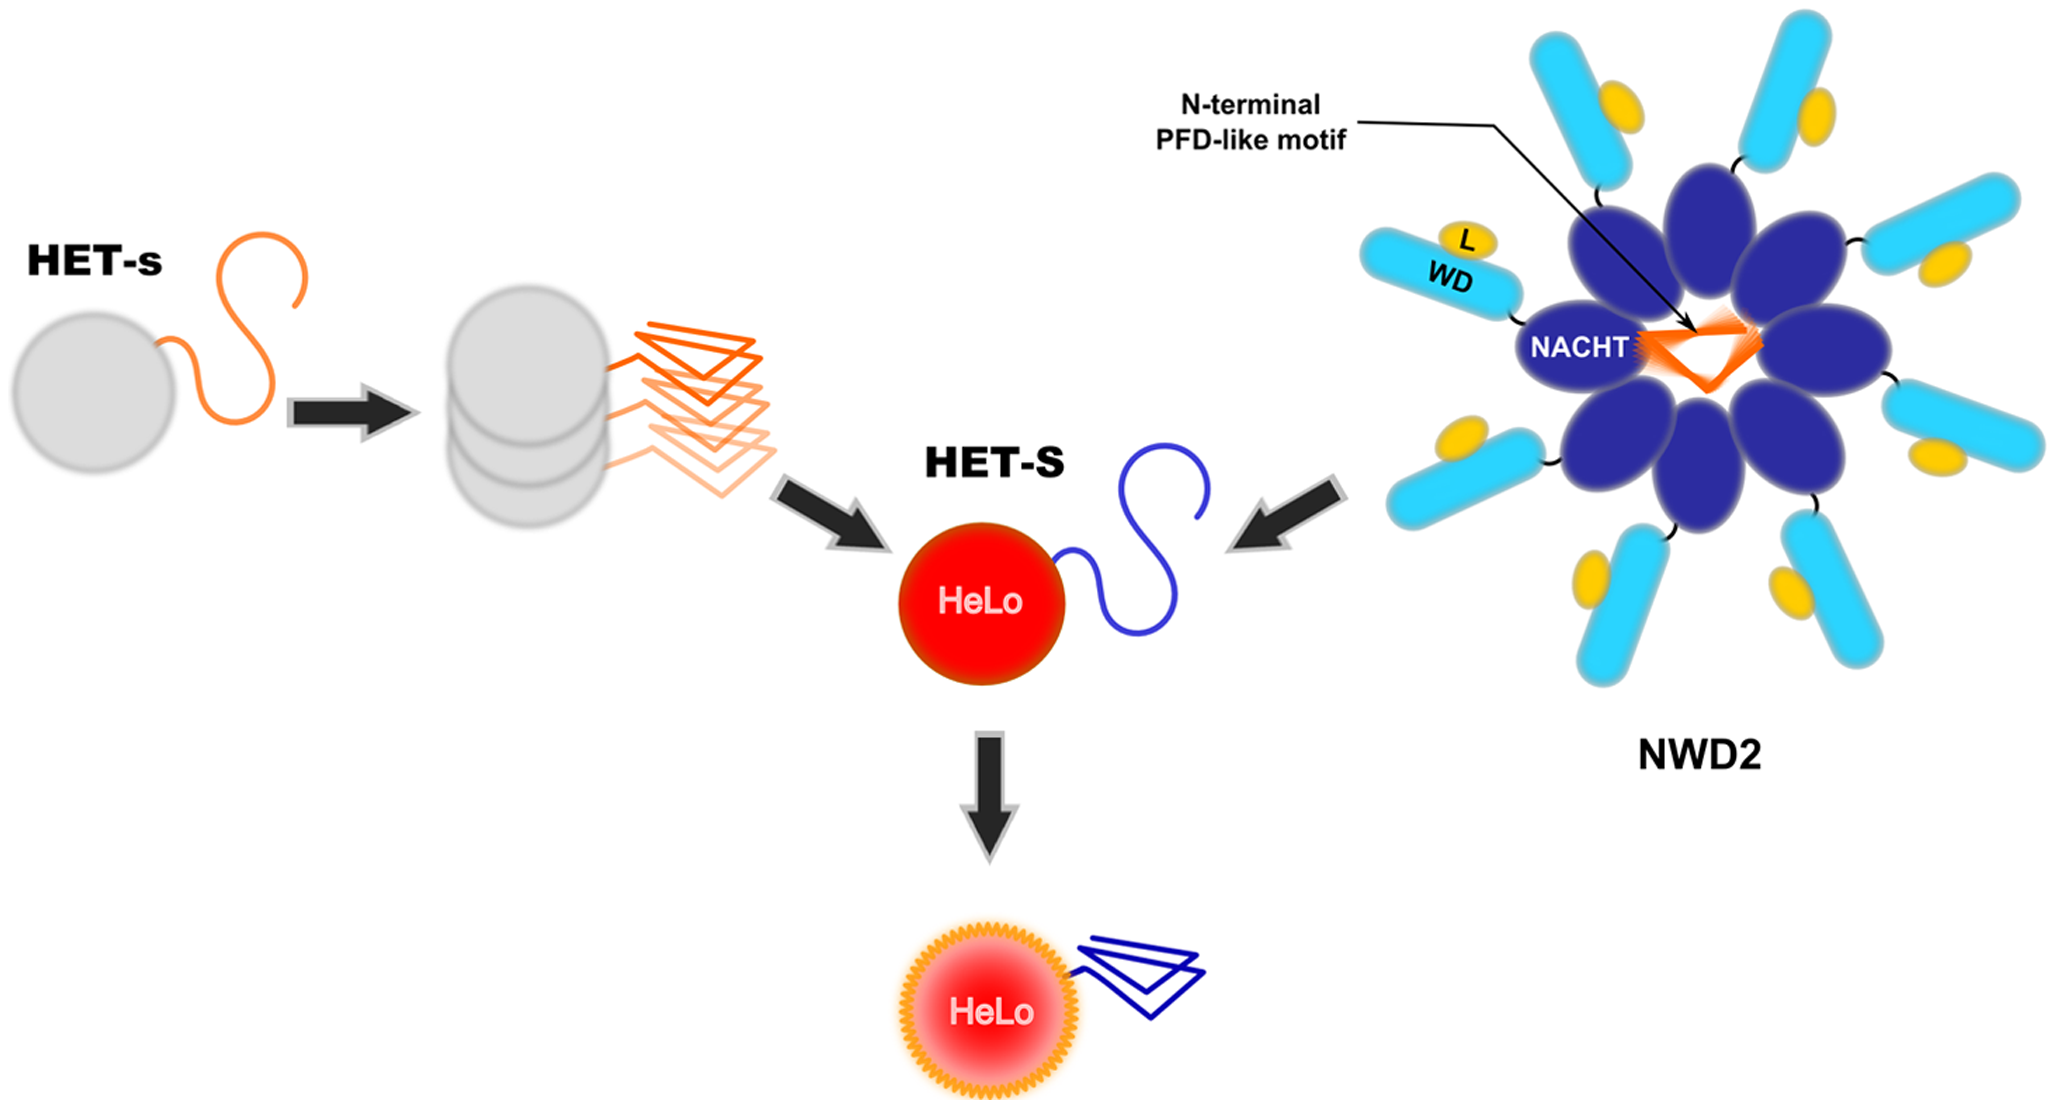 Two proposed mode of activation of the HeLo toxicity domain of HET-S.